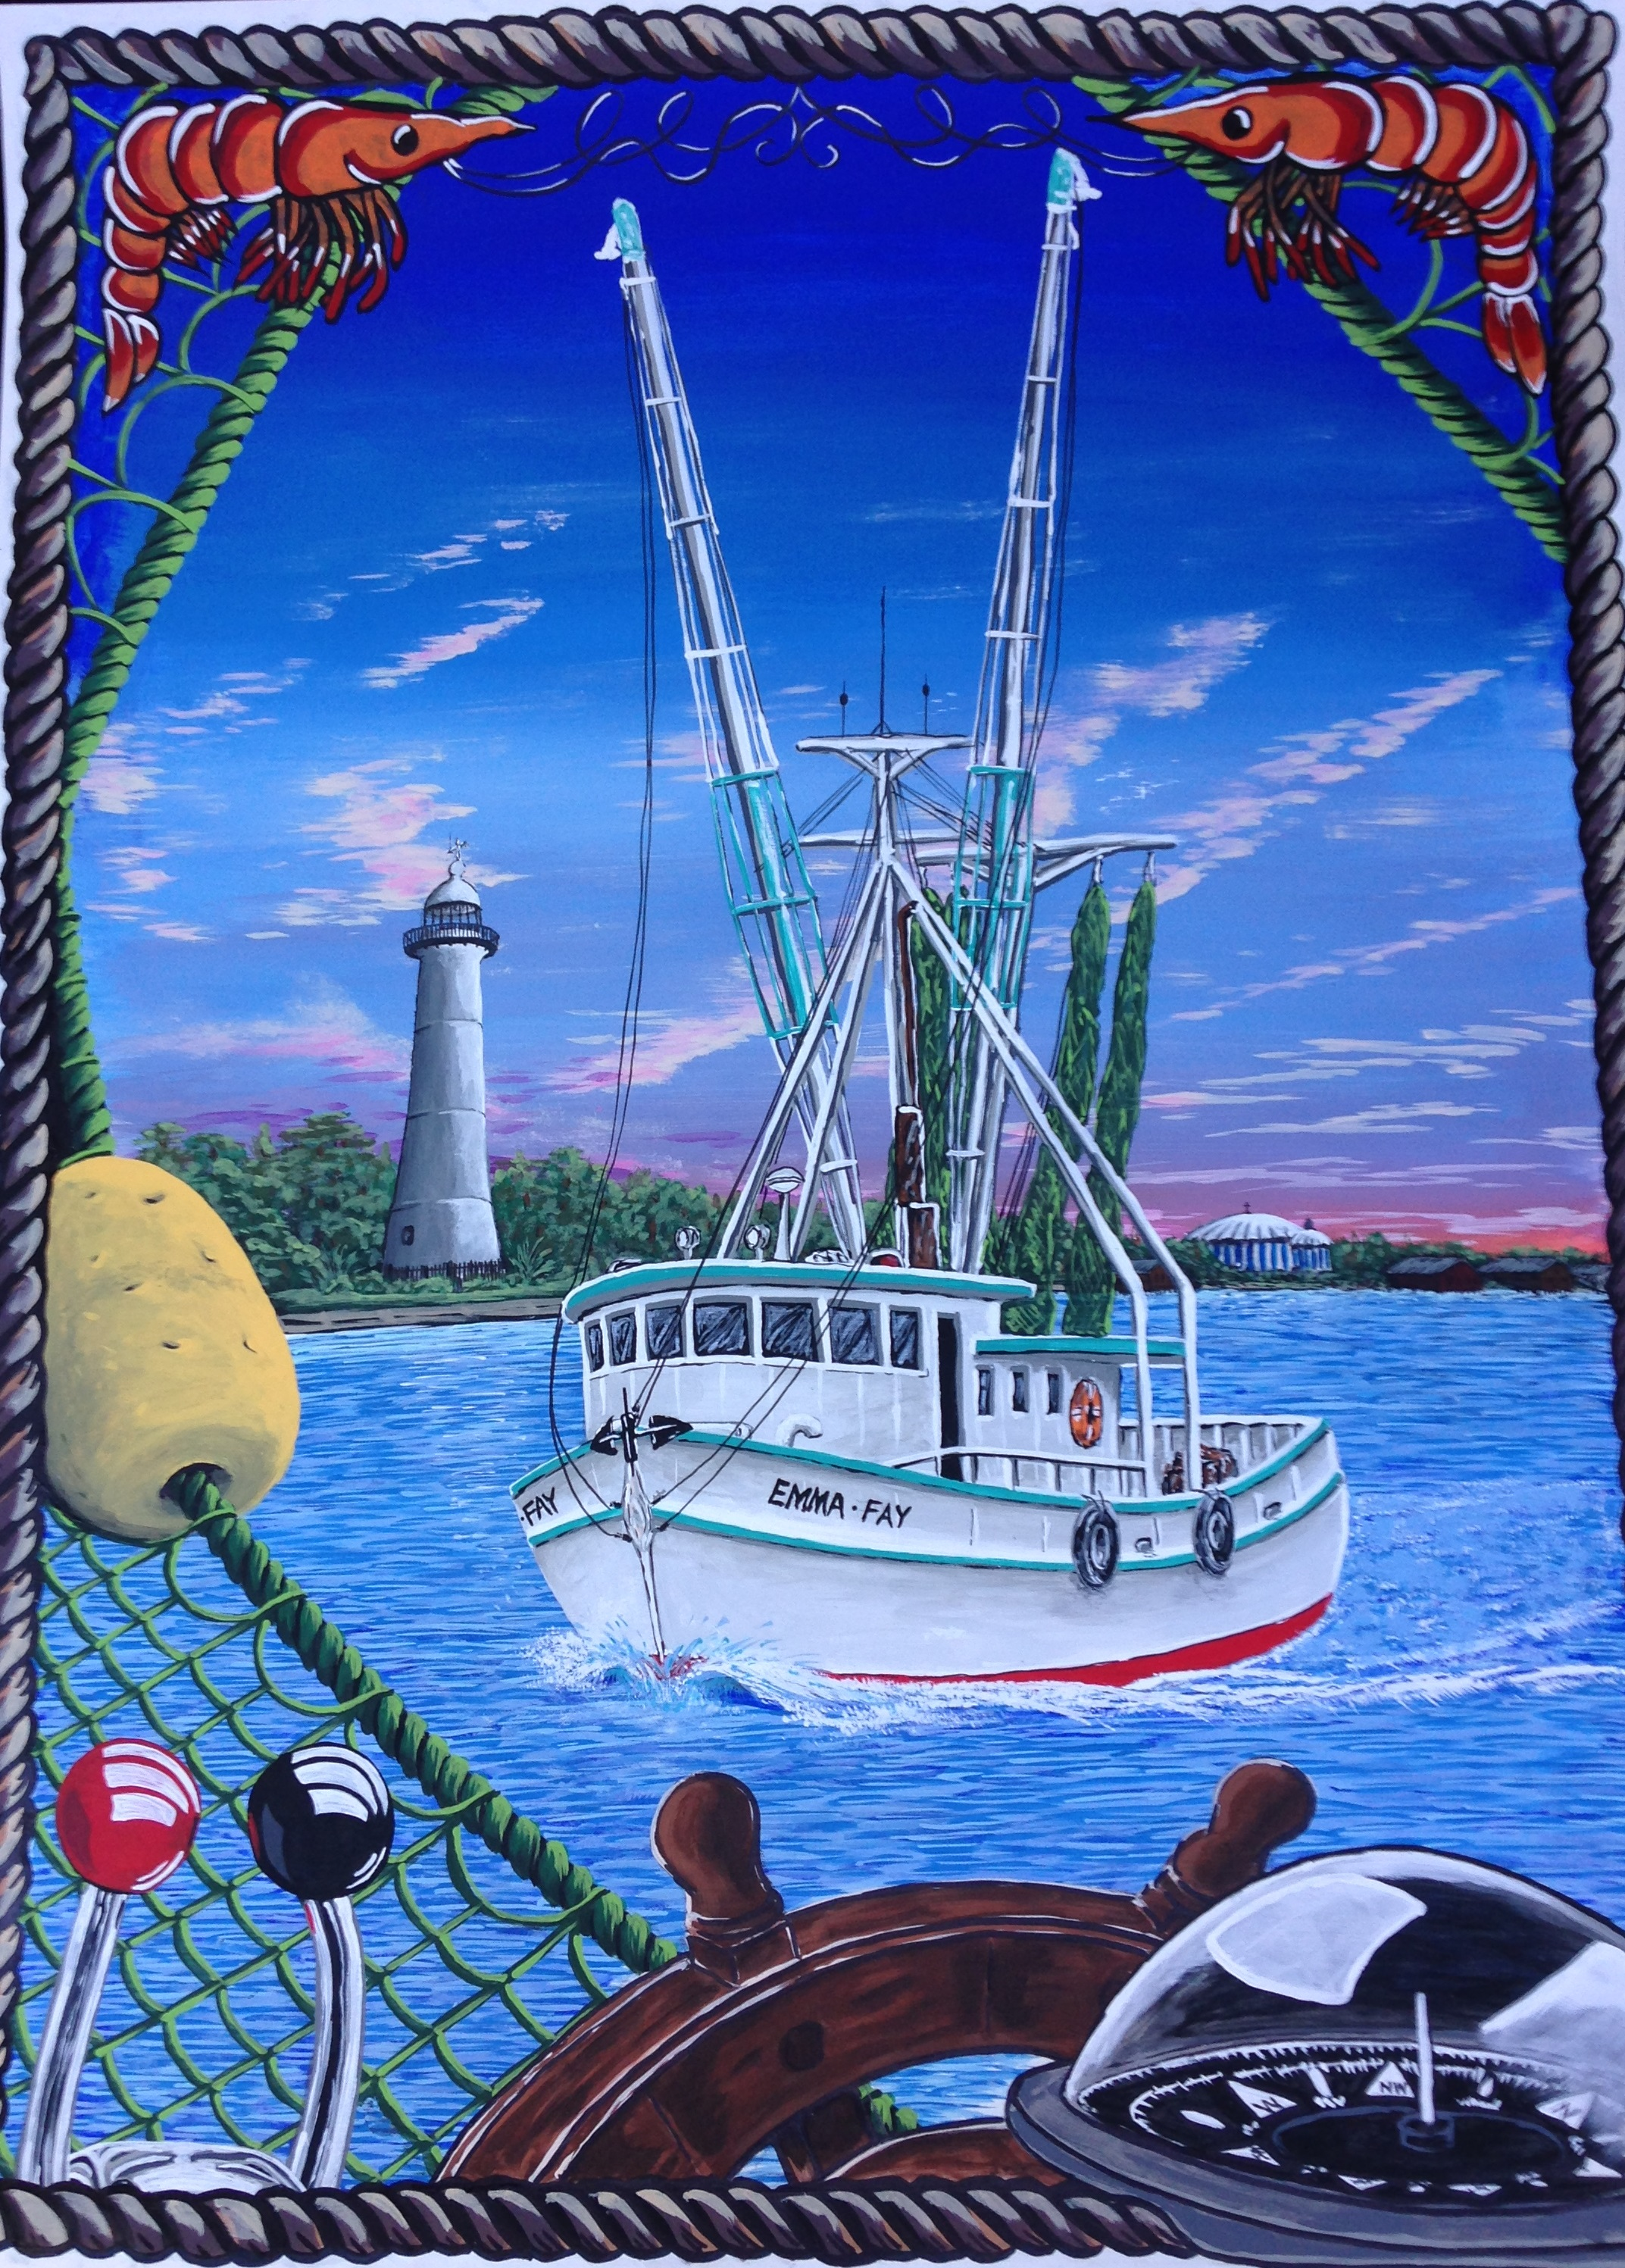 Coastal Tradition - 18 x 24 Acrylic ( 2017 Biloxi Blessing of the Fleet poster winner)